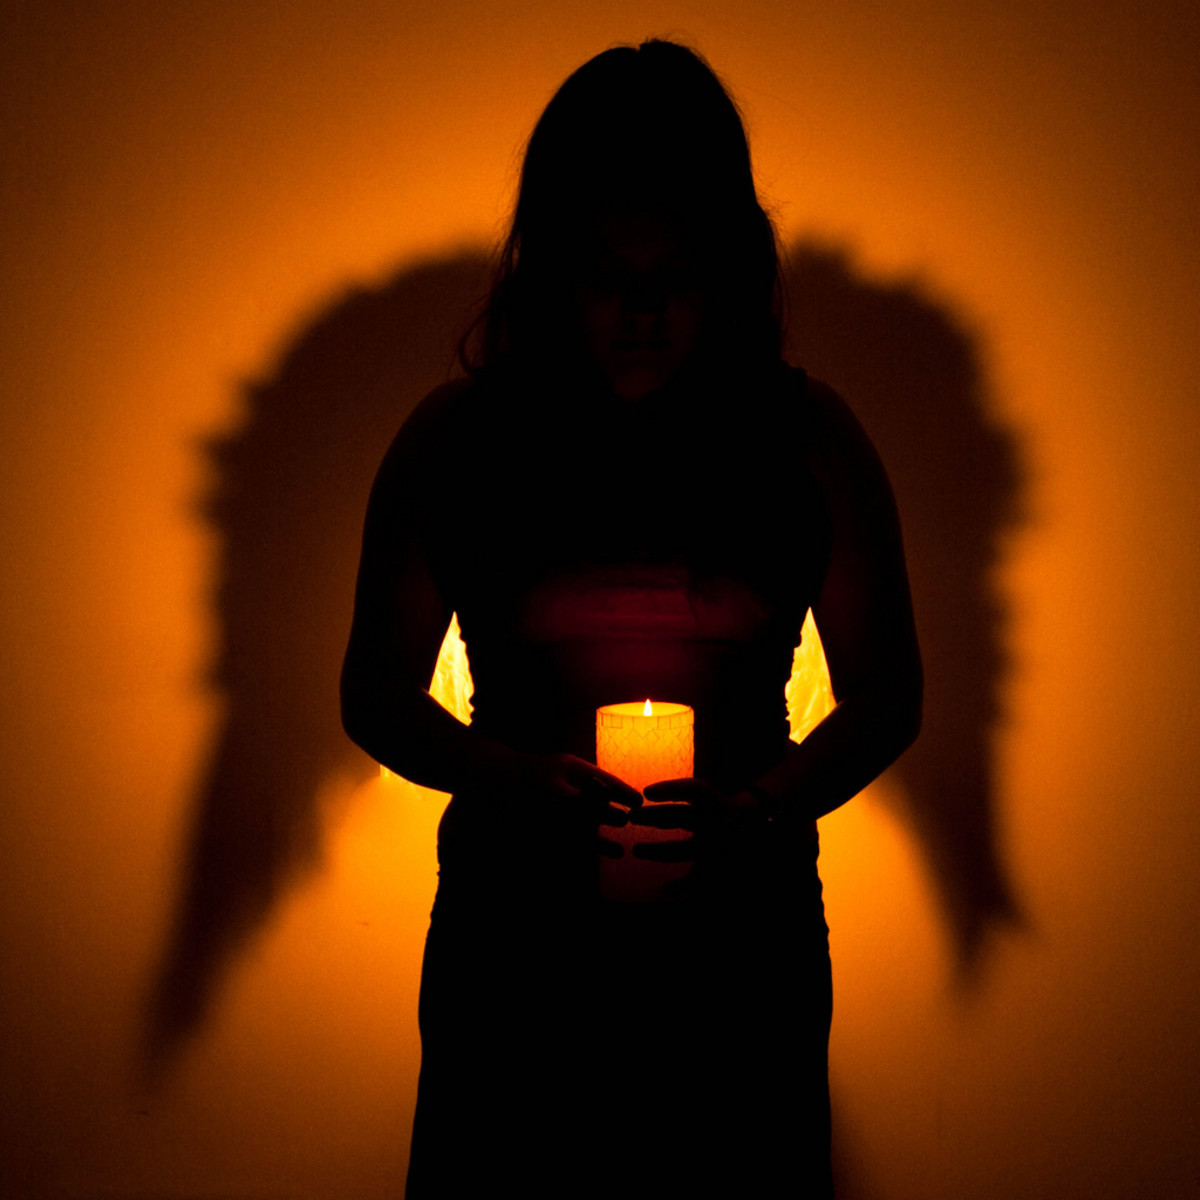 Are there angels in your life?  Are you a source of light and inspiration in the lives of others?